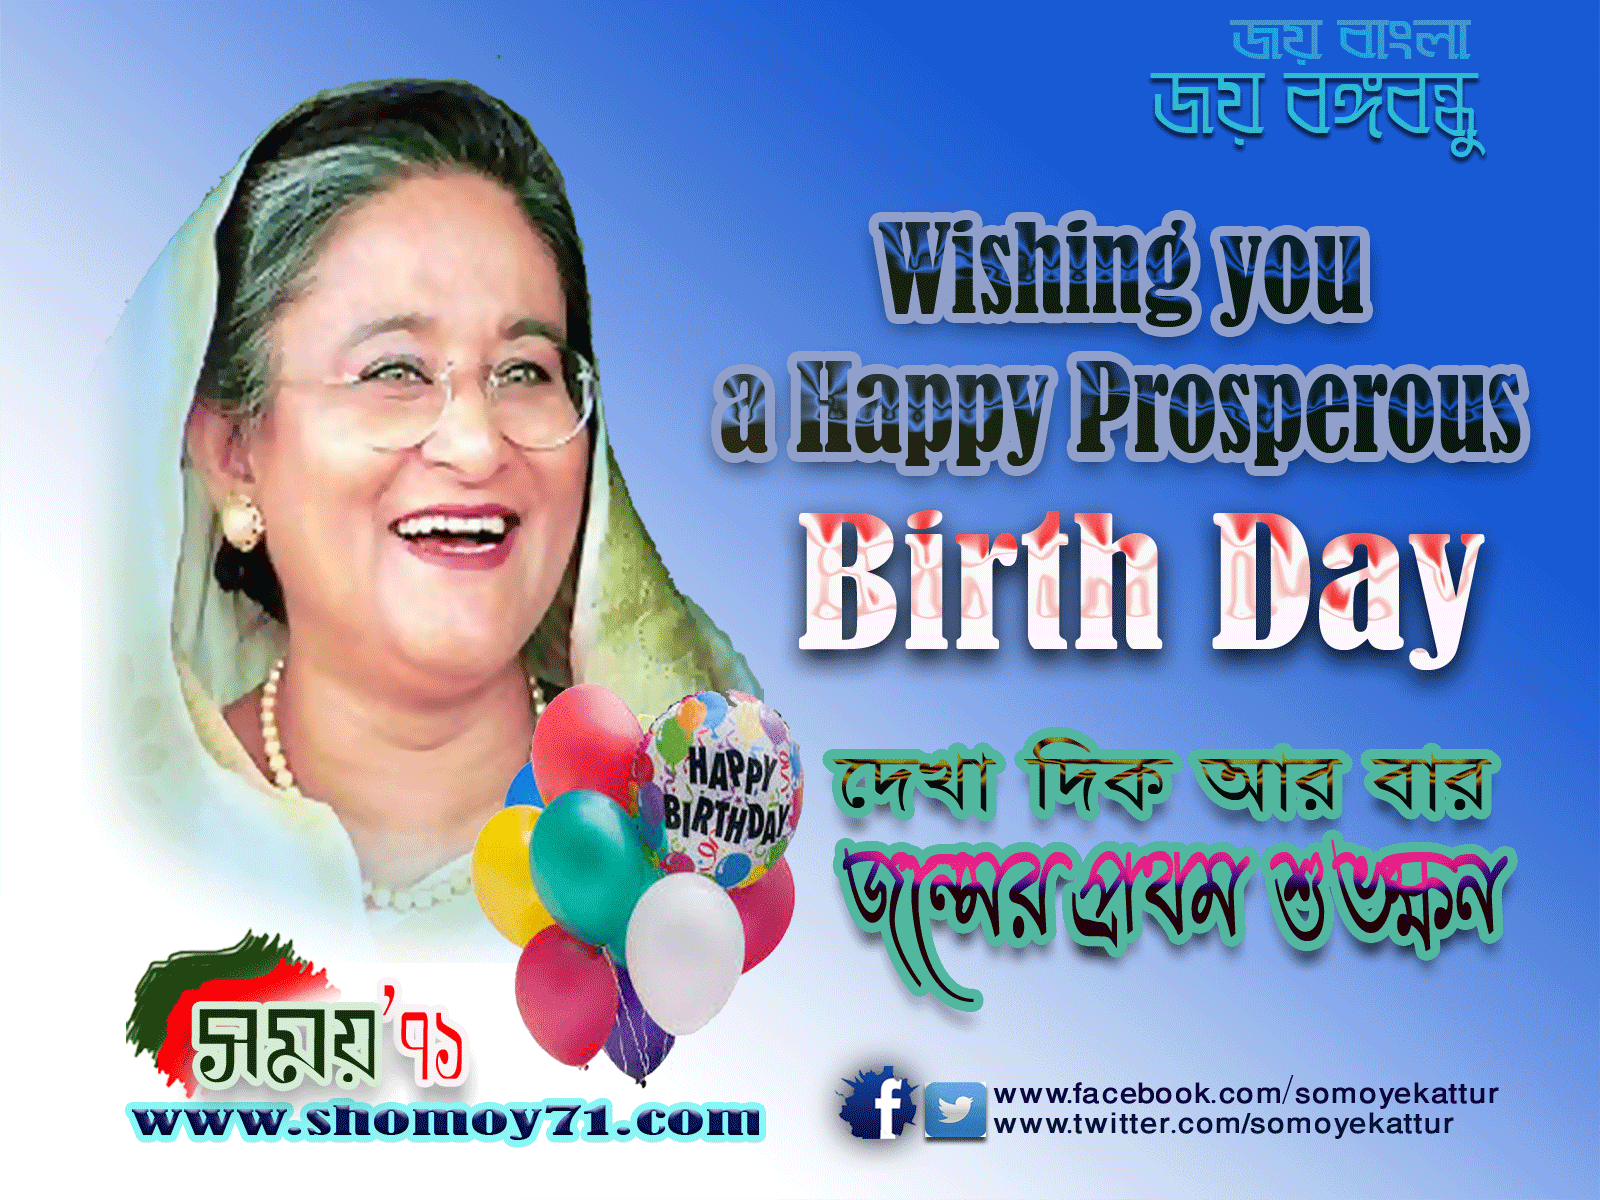 Happy Birth Day to Sheikh Hasina